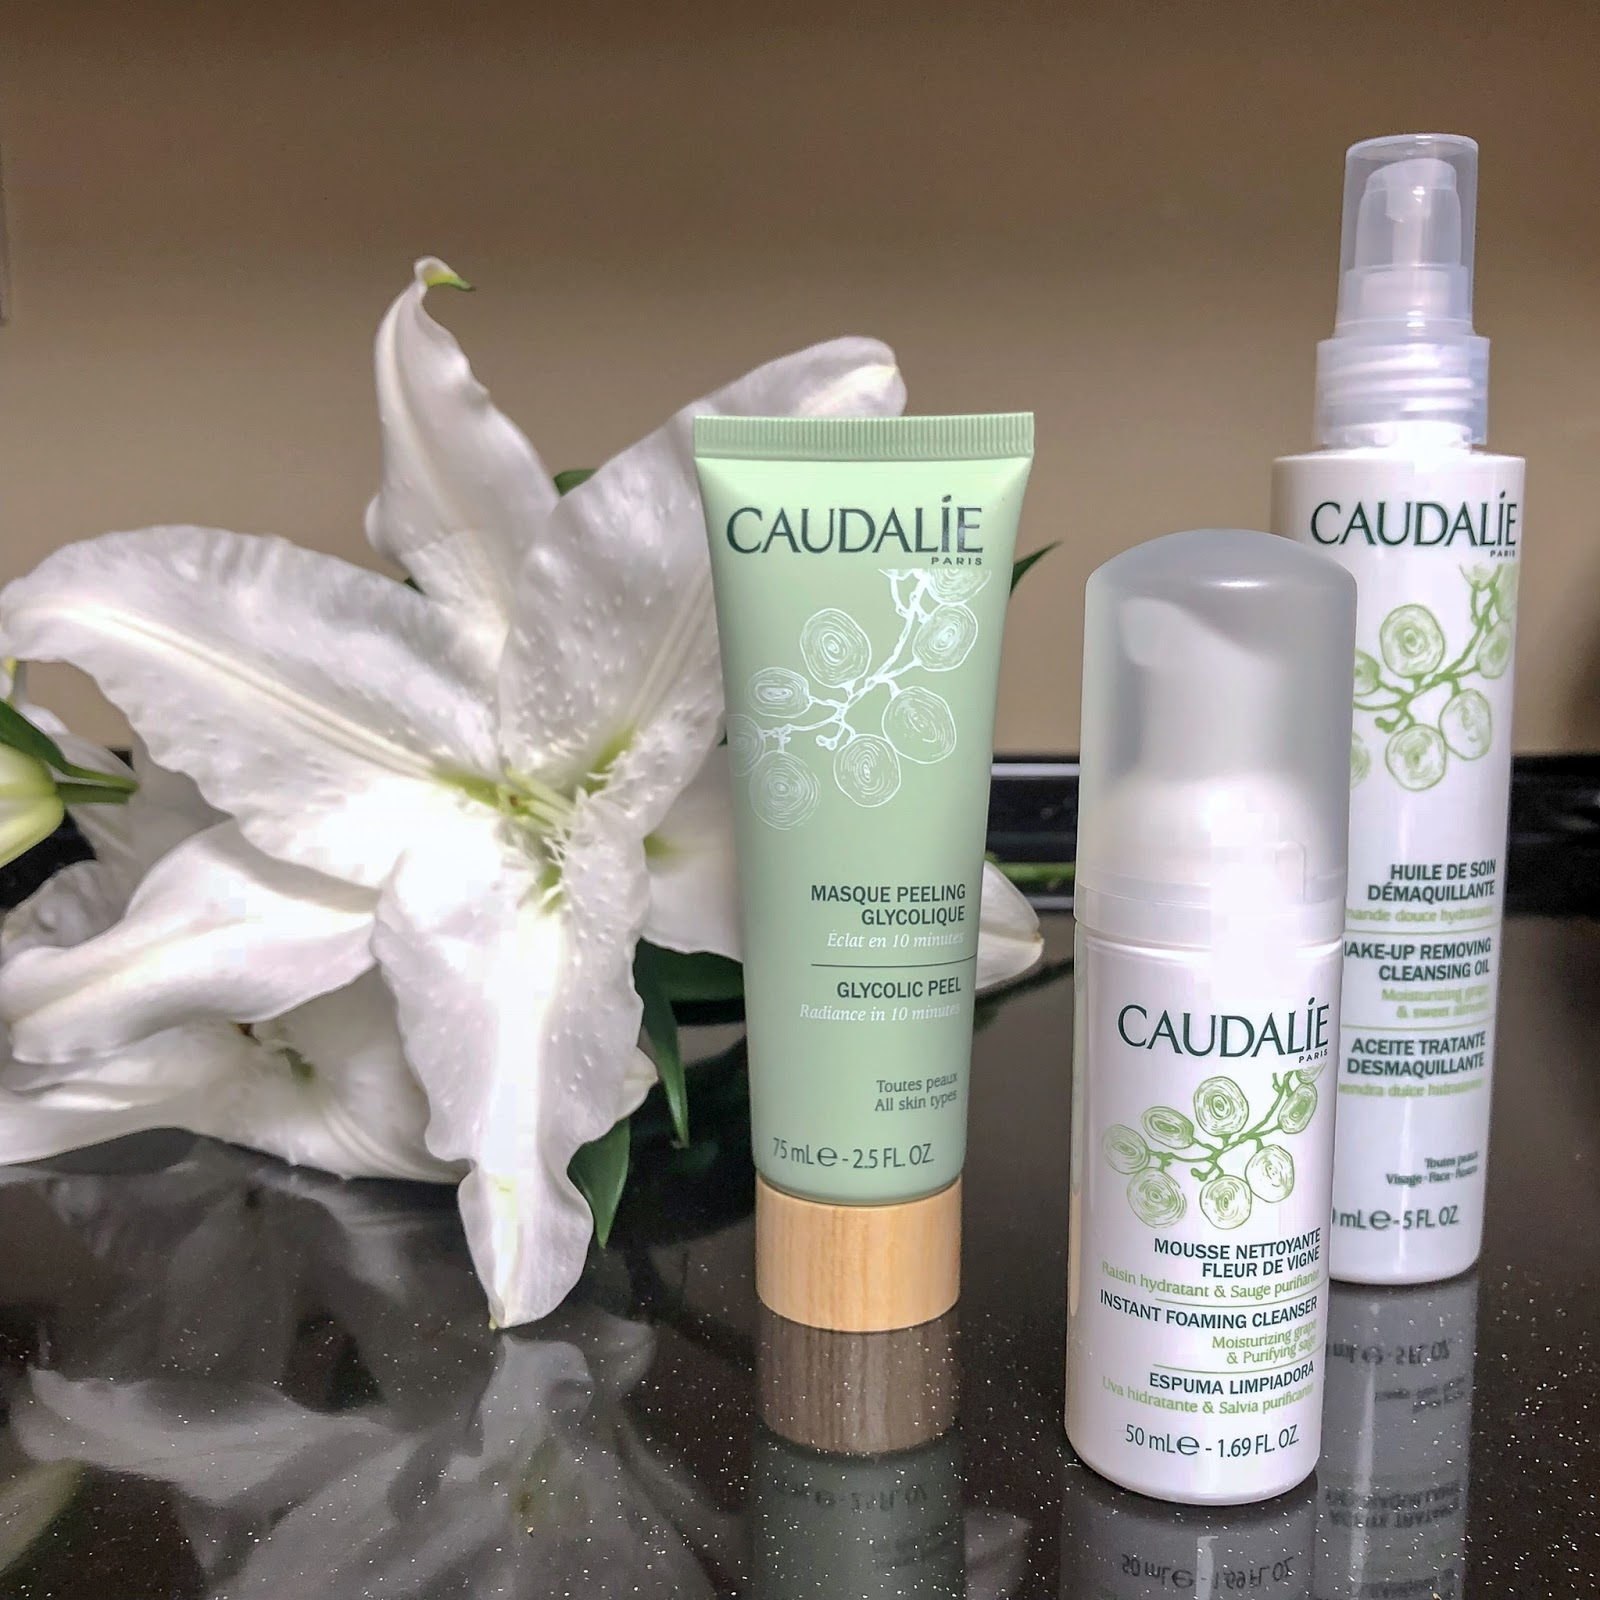 my midlife fashion, caudalie, caudalie glycolic peel mask, caudalie instant foaming cleanser, caudalie make up removing cleansing oil